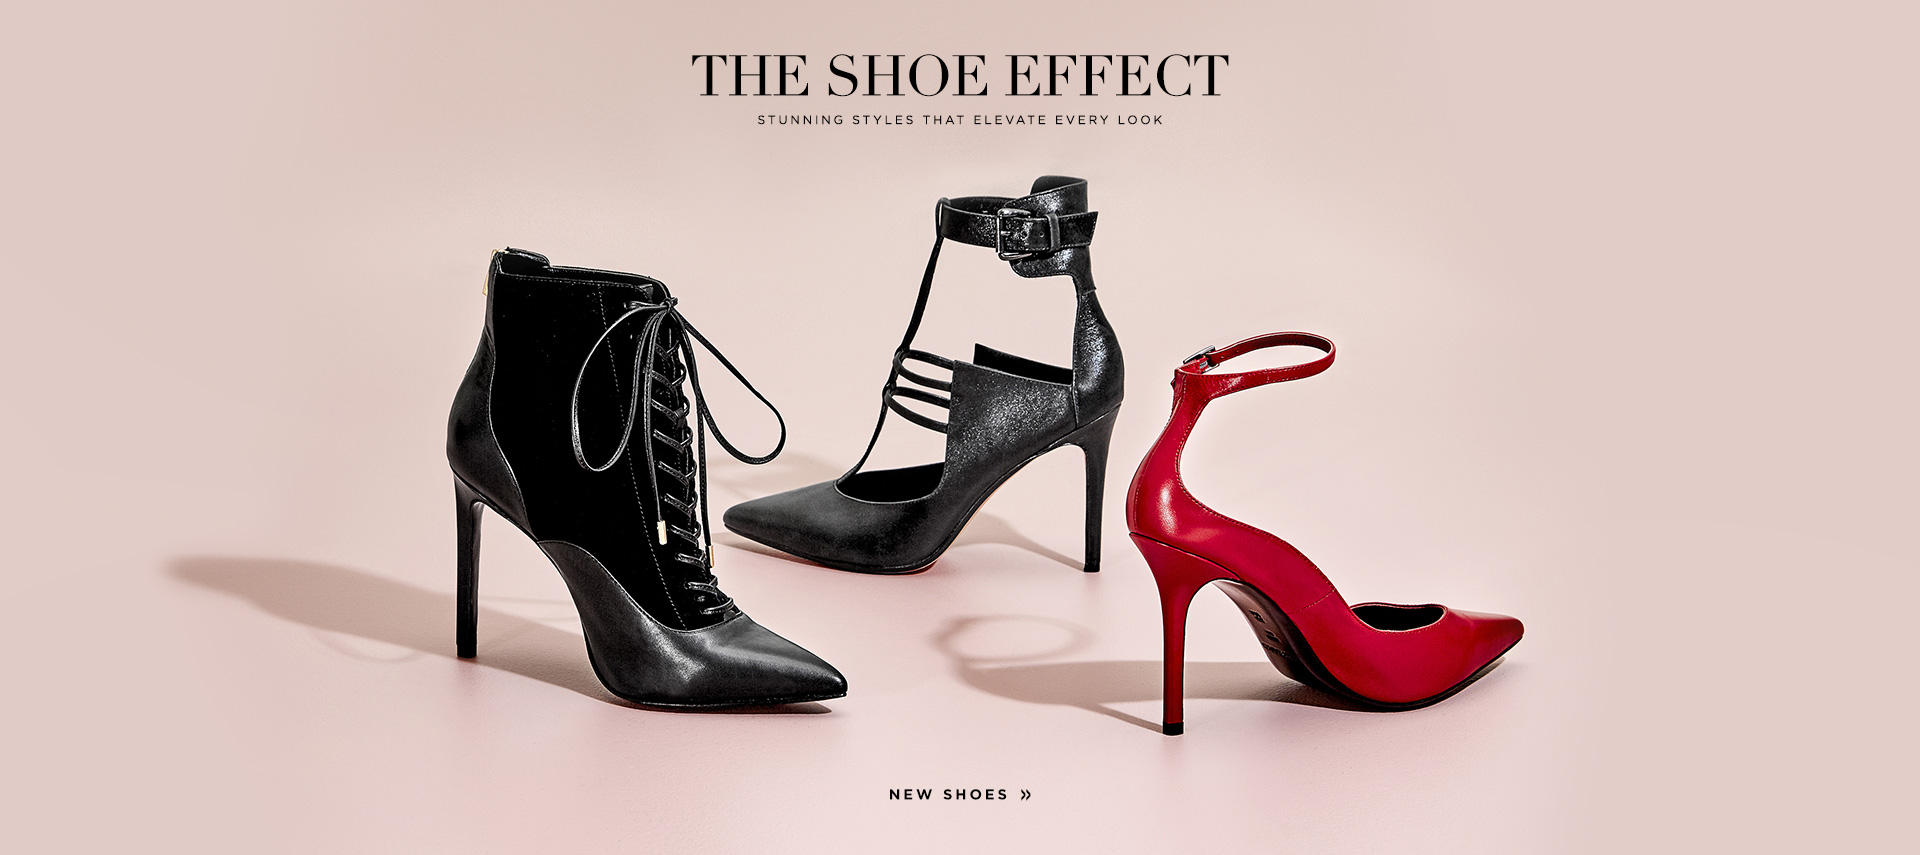 The Shoe Effect